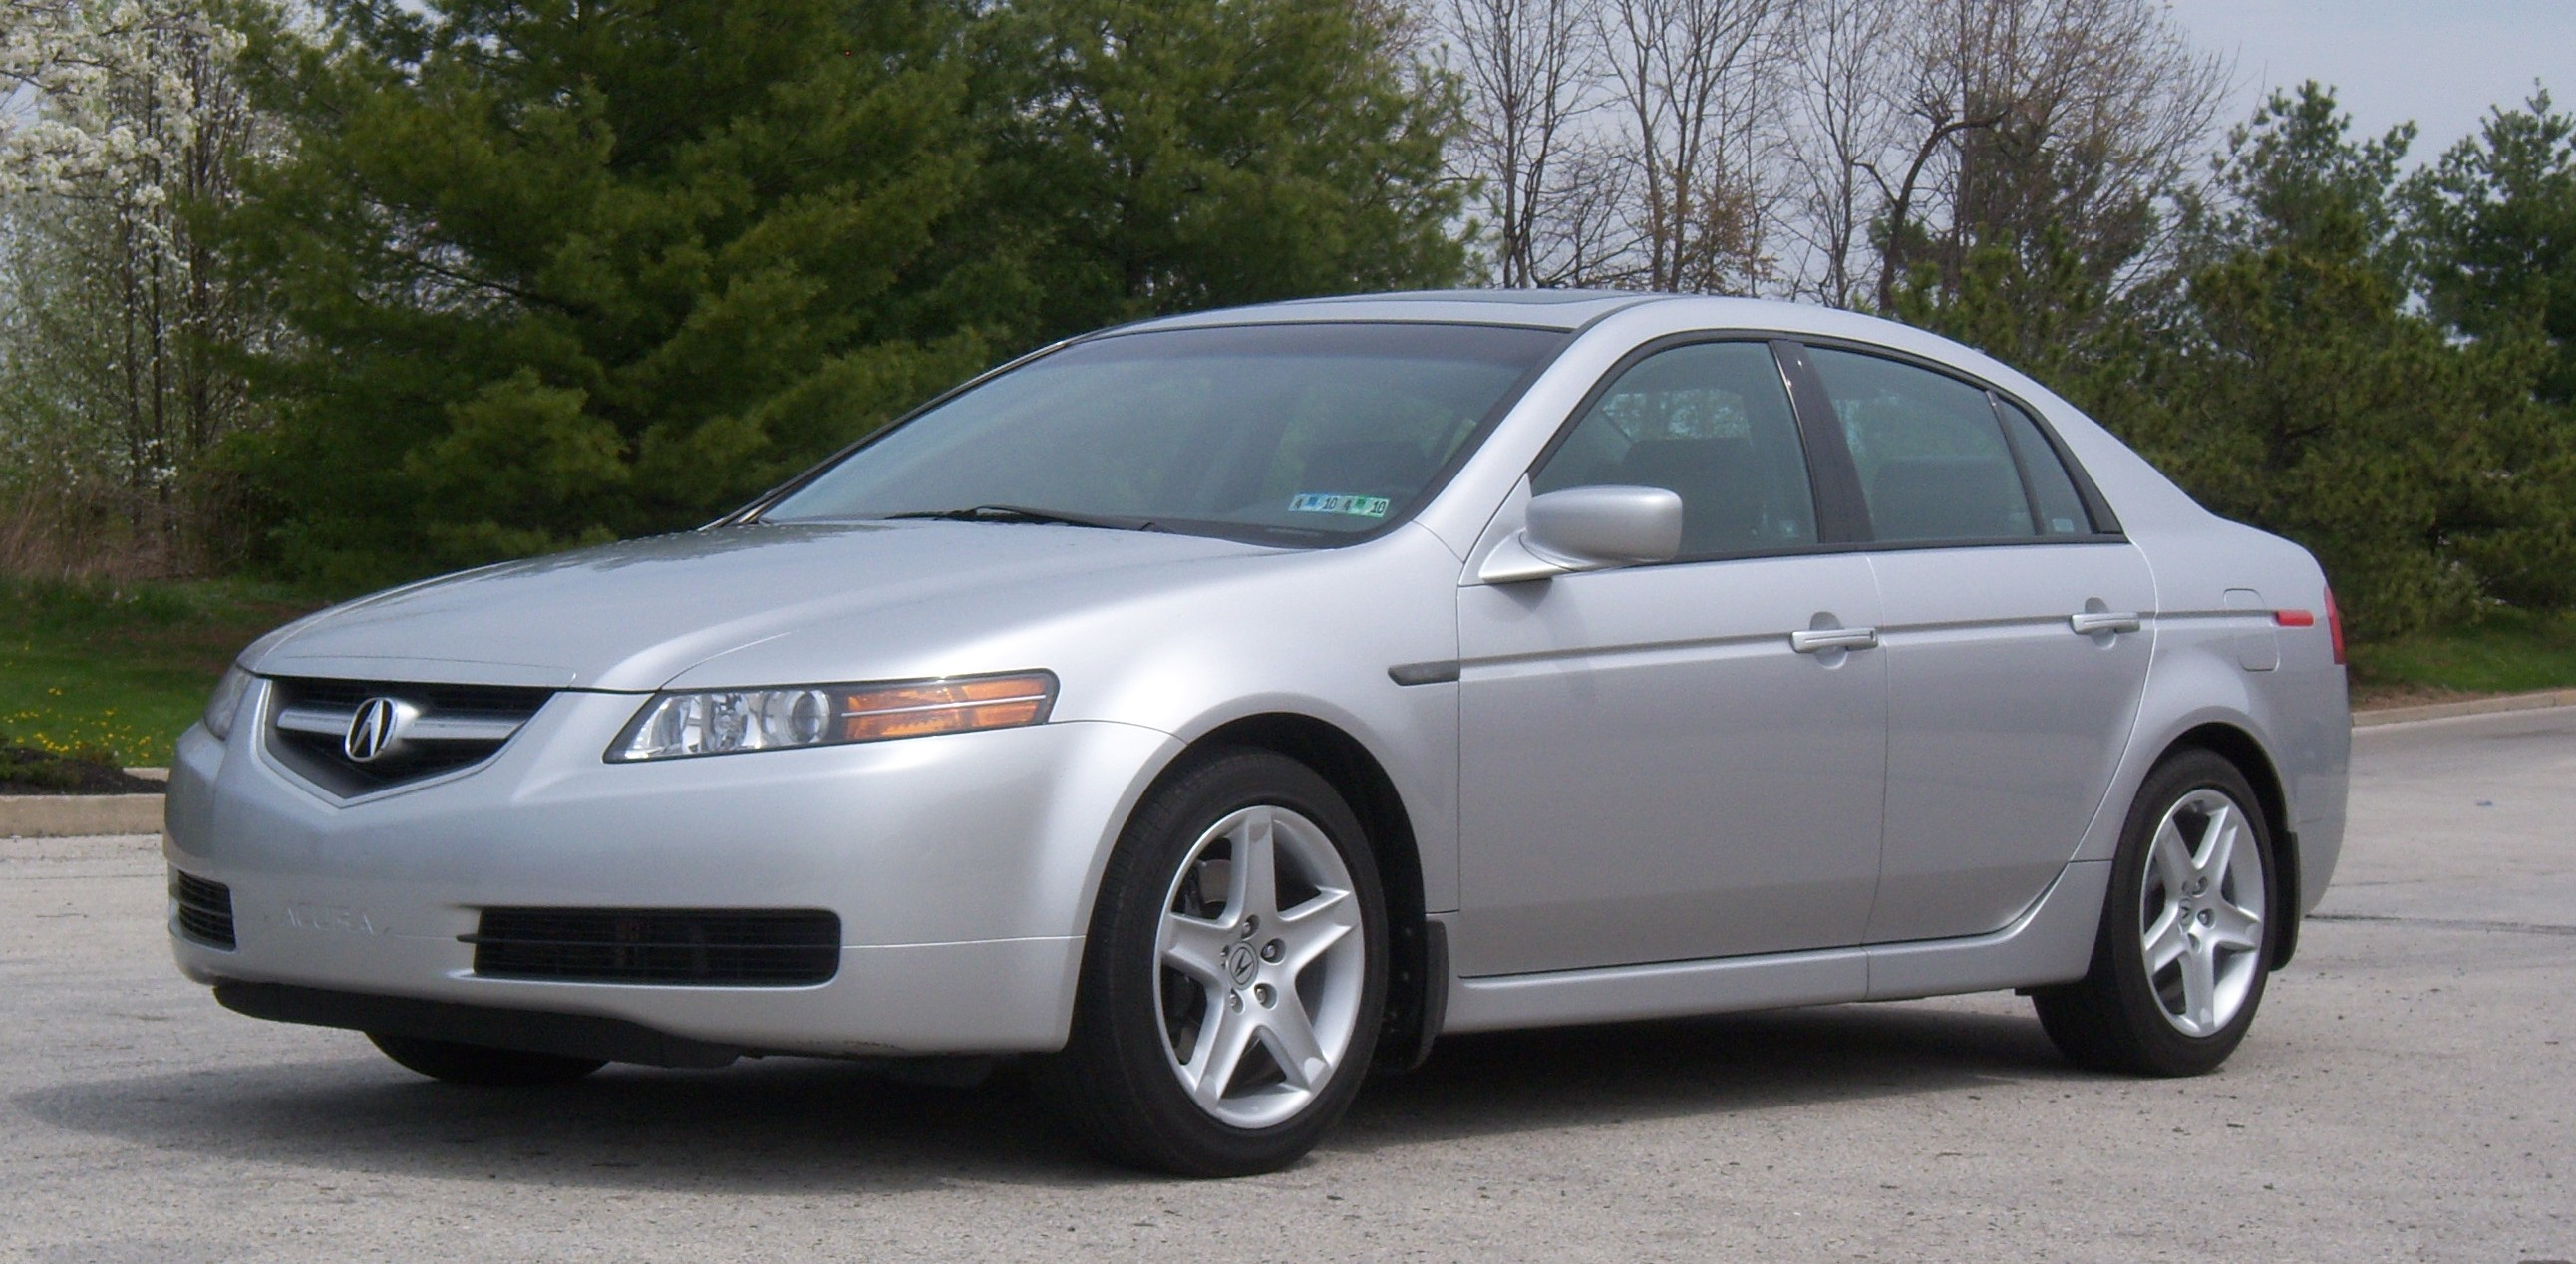 acura tl iv 2010 images